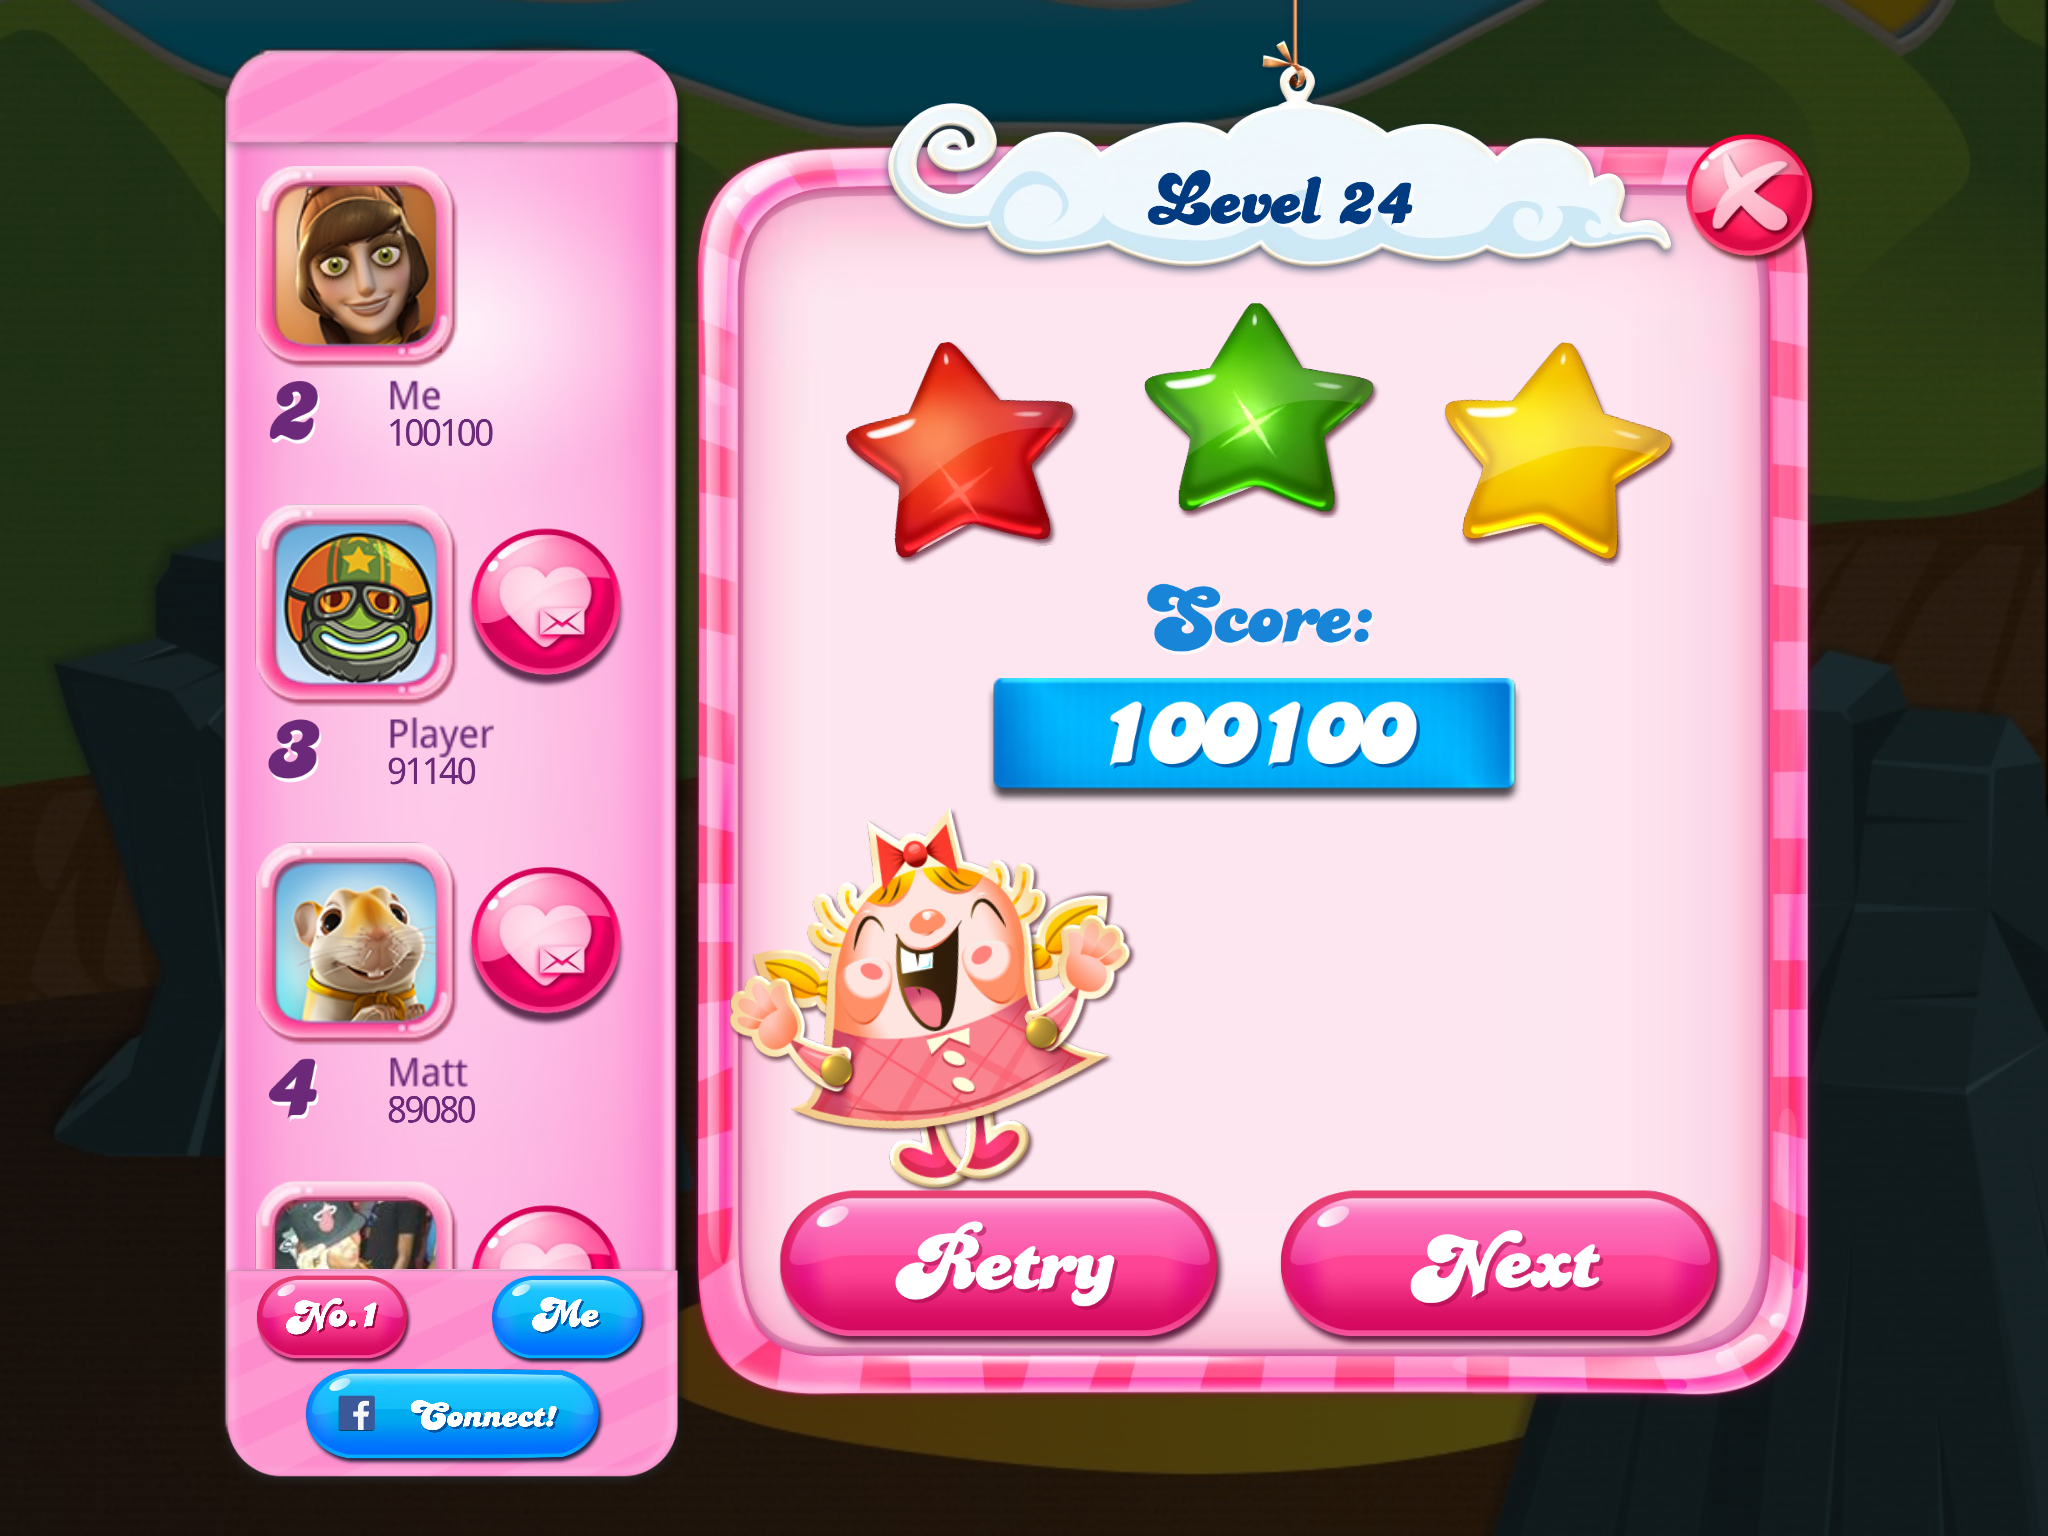 Candy Crush Saga: Level 024 100,100 points